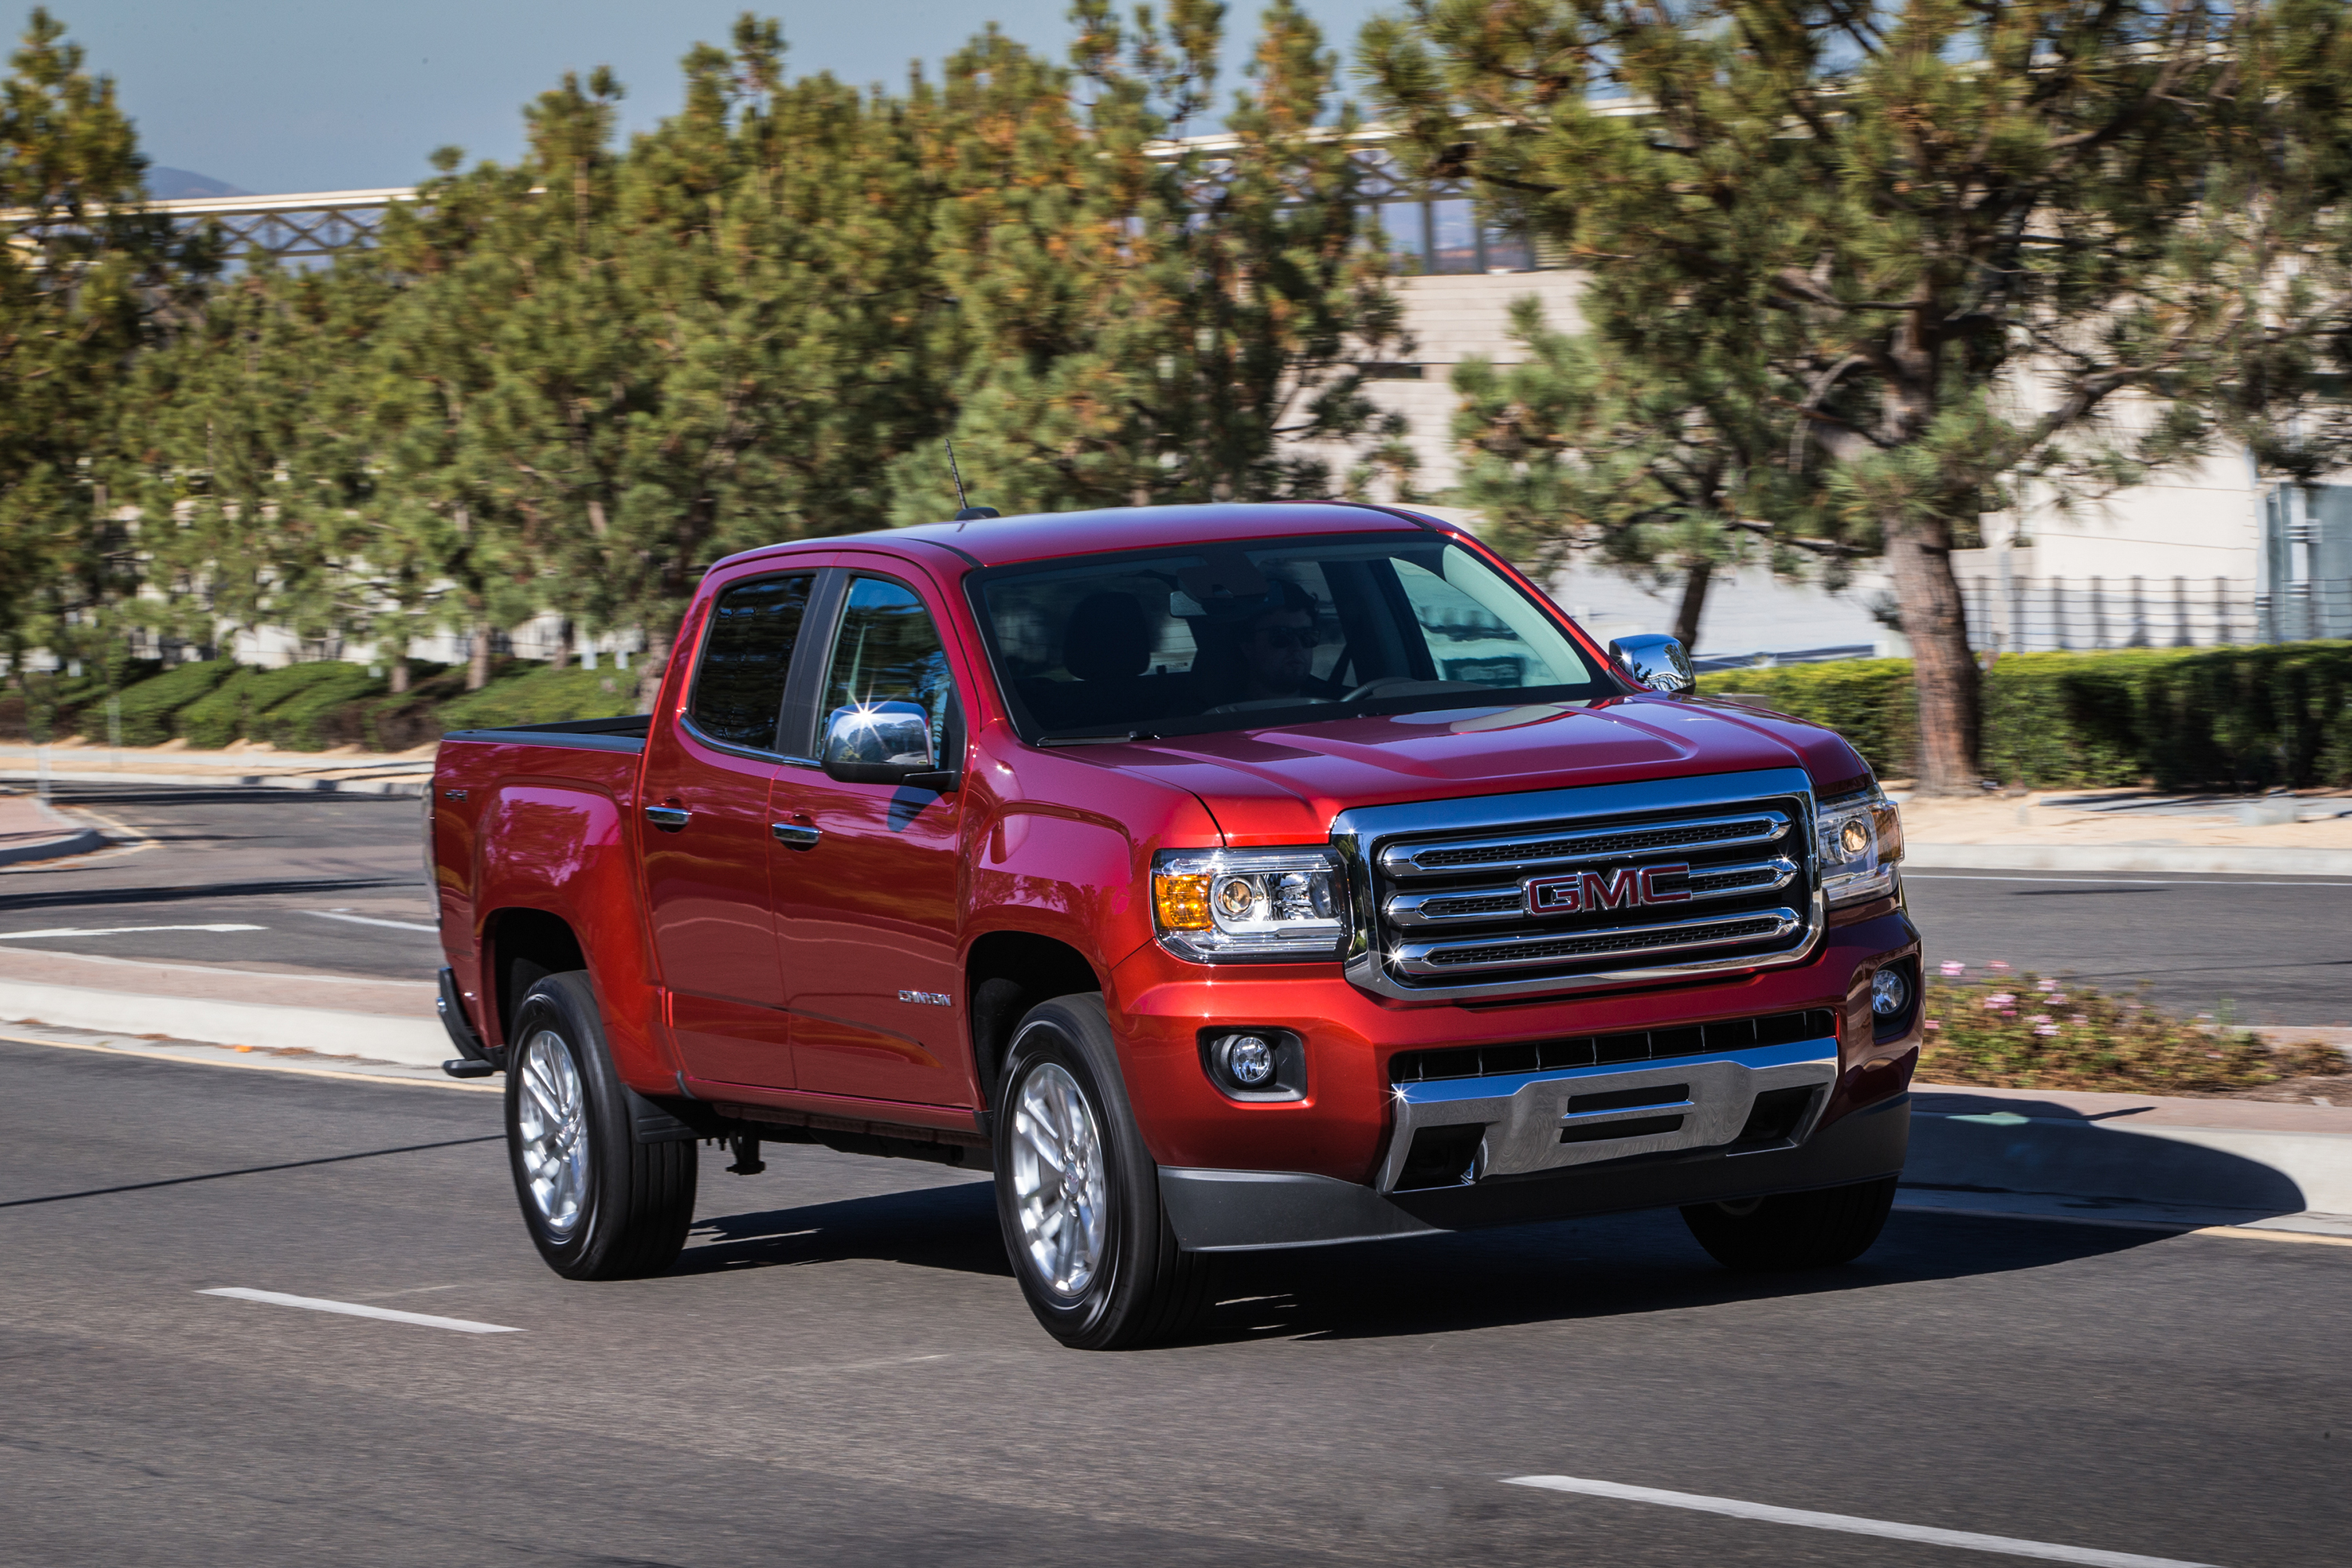 2016 Canyon: Small Pickup Truck - GMC